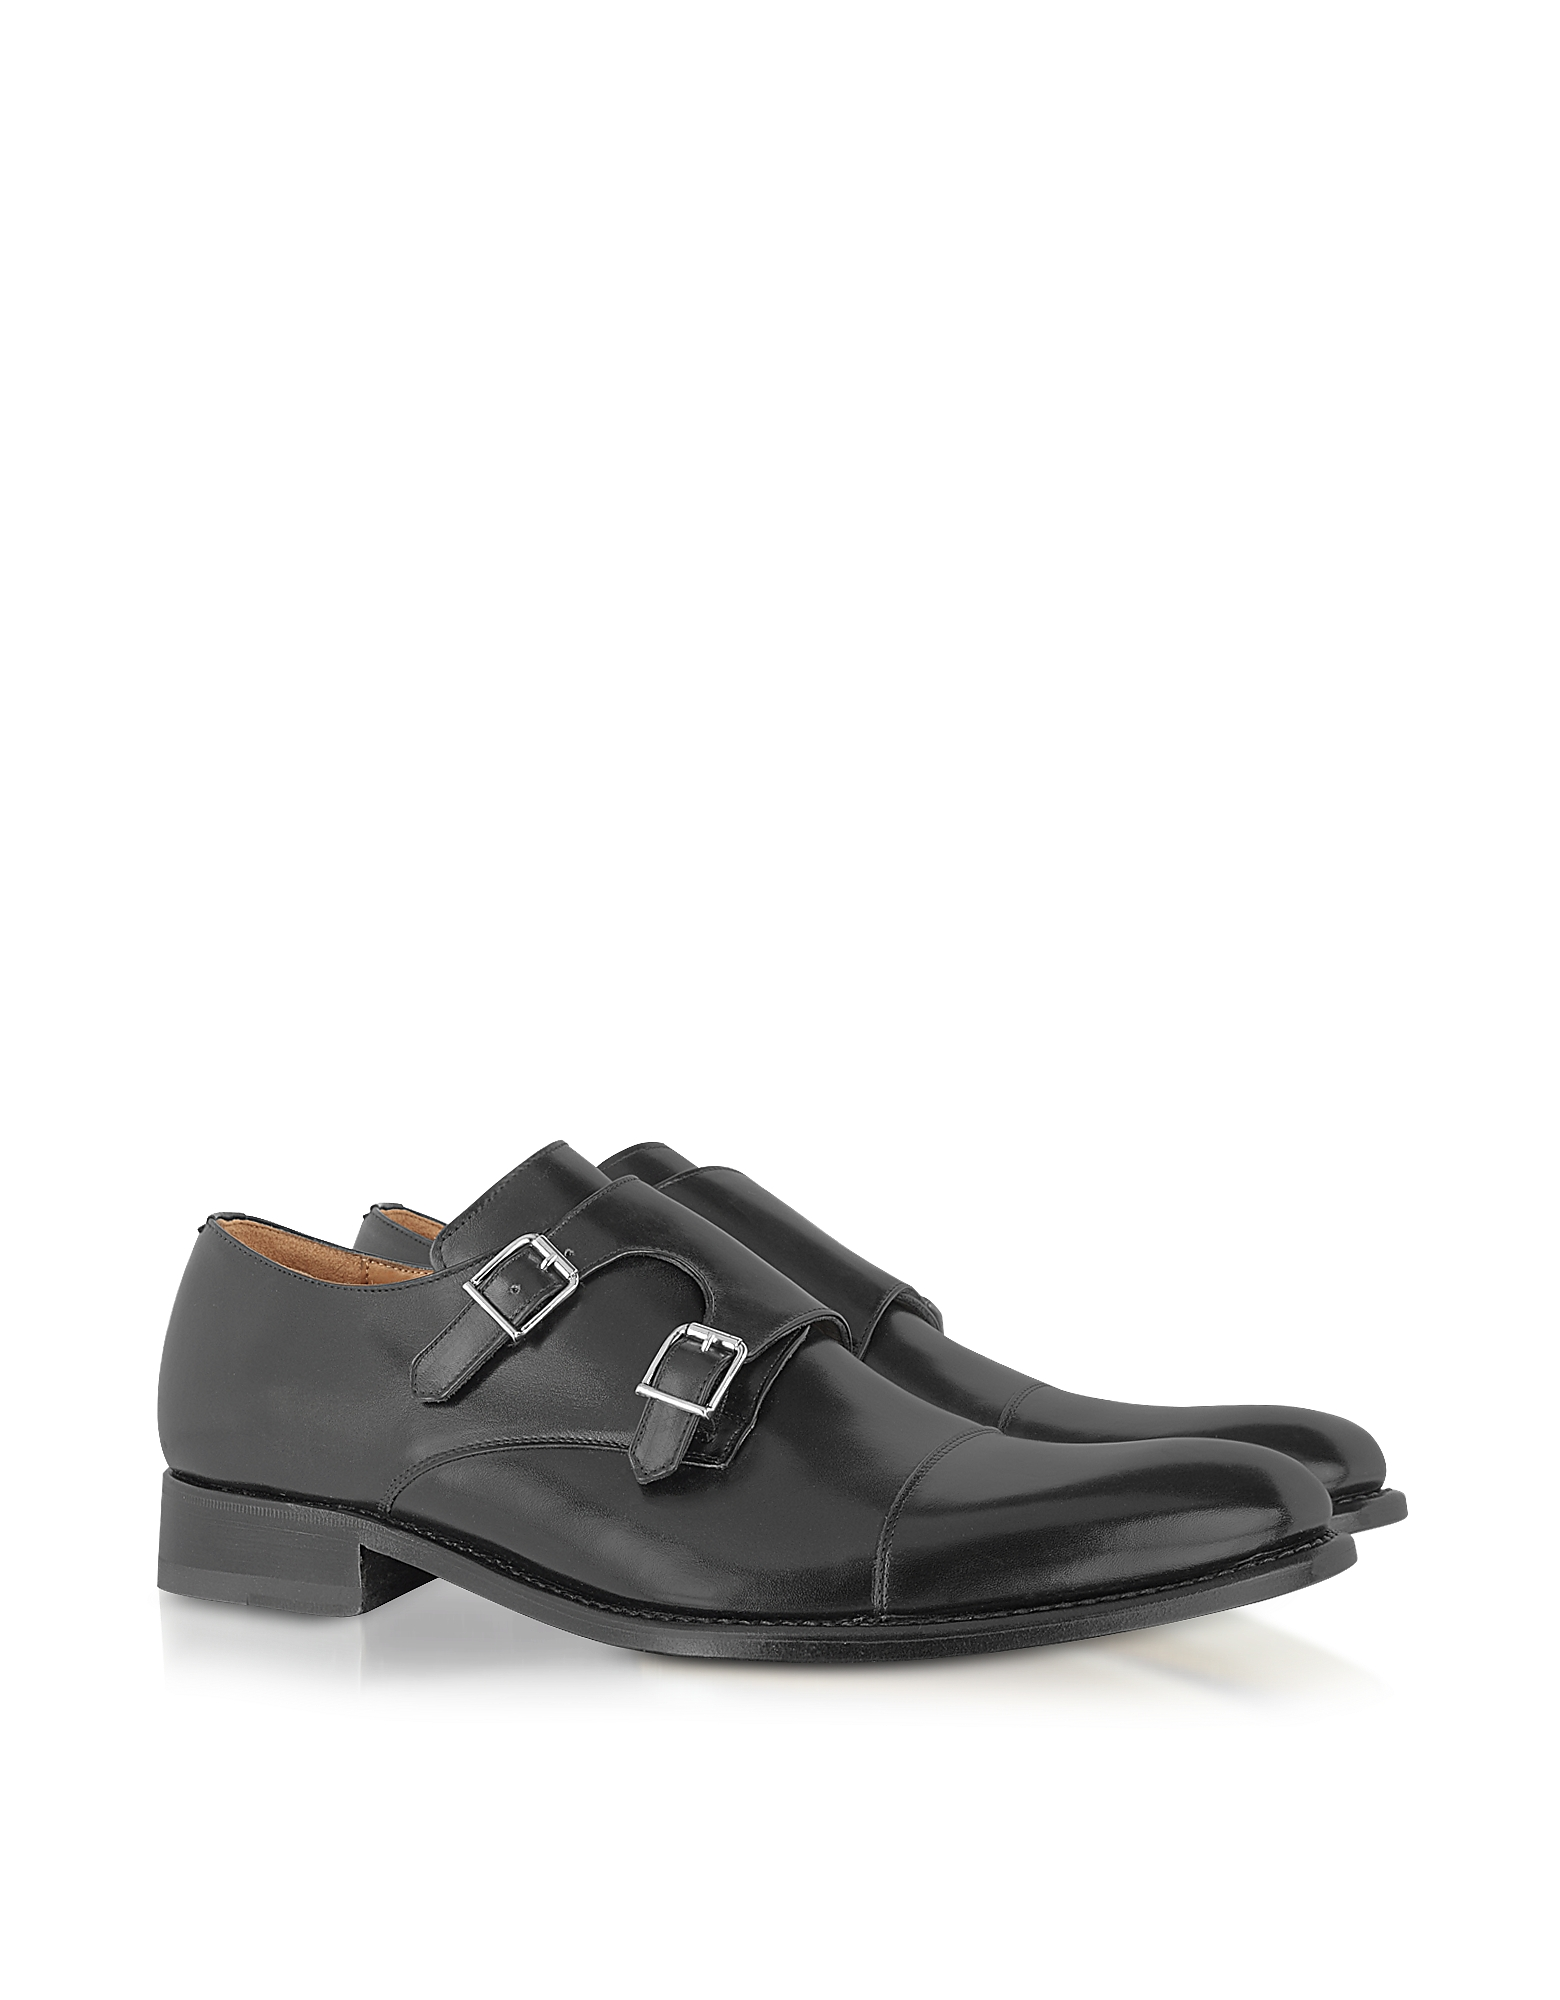 Forzieri Shoes, Italian Handcrafted Black Leather Monk Strap Shoes